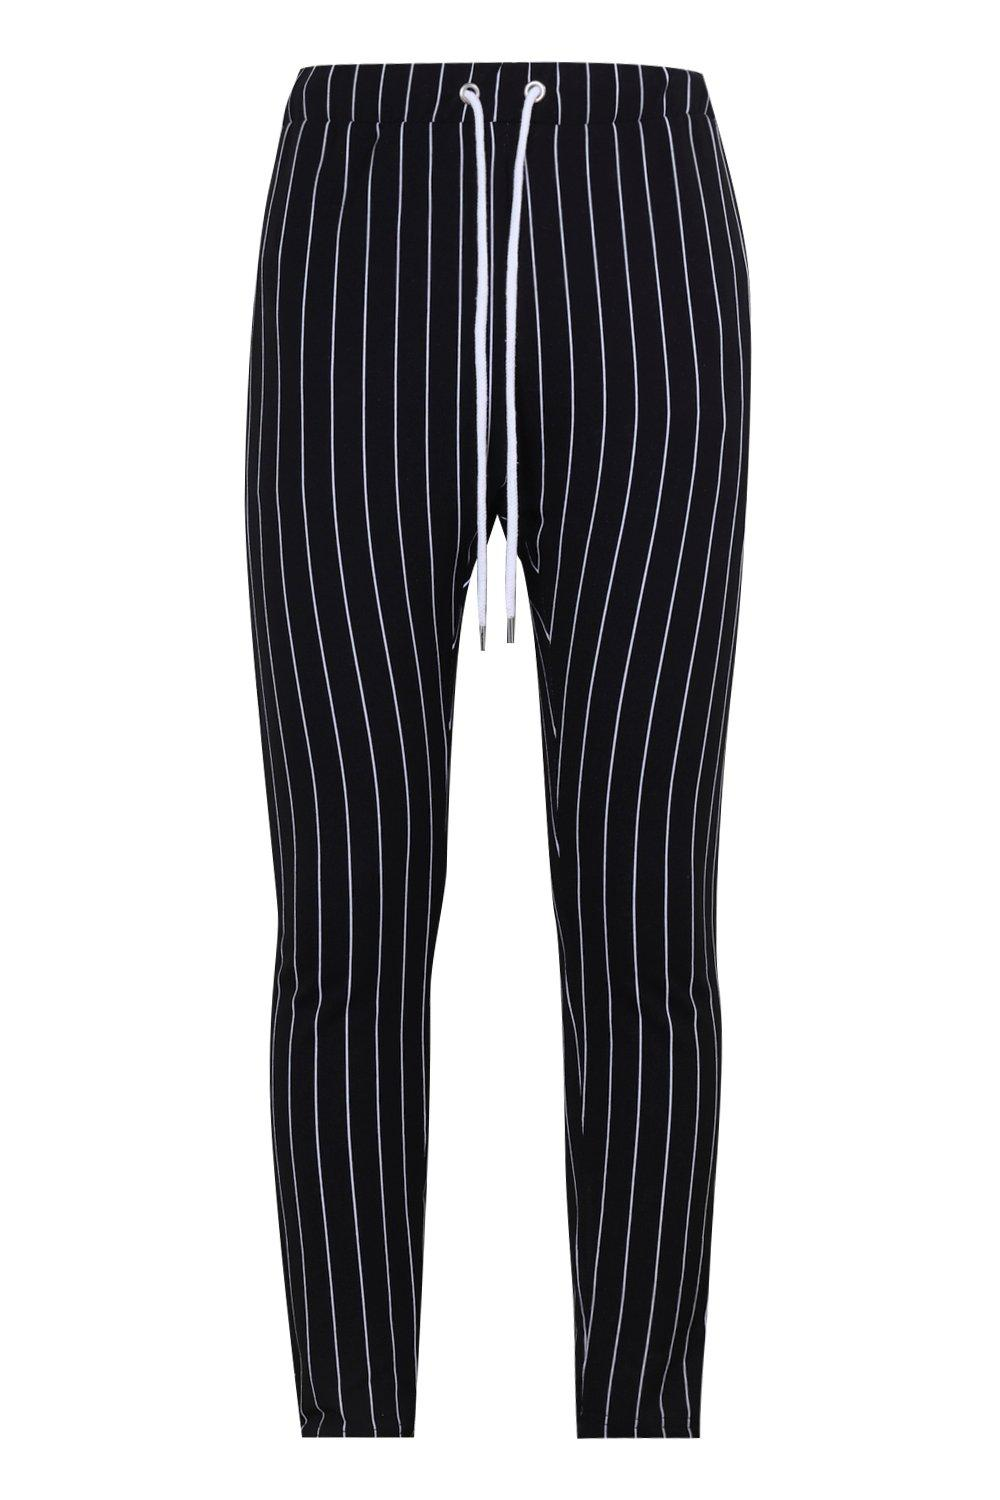 black black Skinny Skinny Joggers Skinny Striped Fit Striped Fit Joggers Fit qXUw7ZRxaa